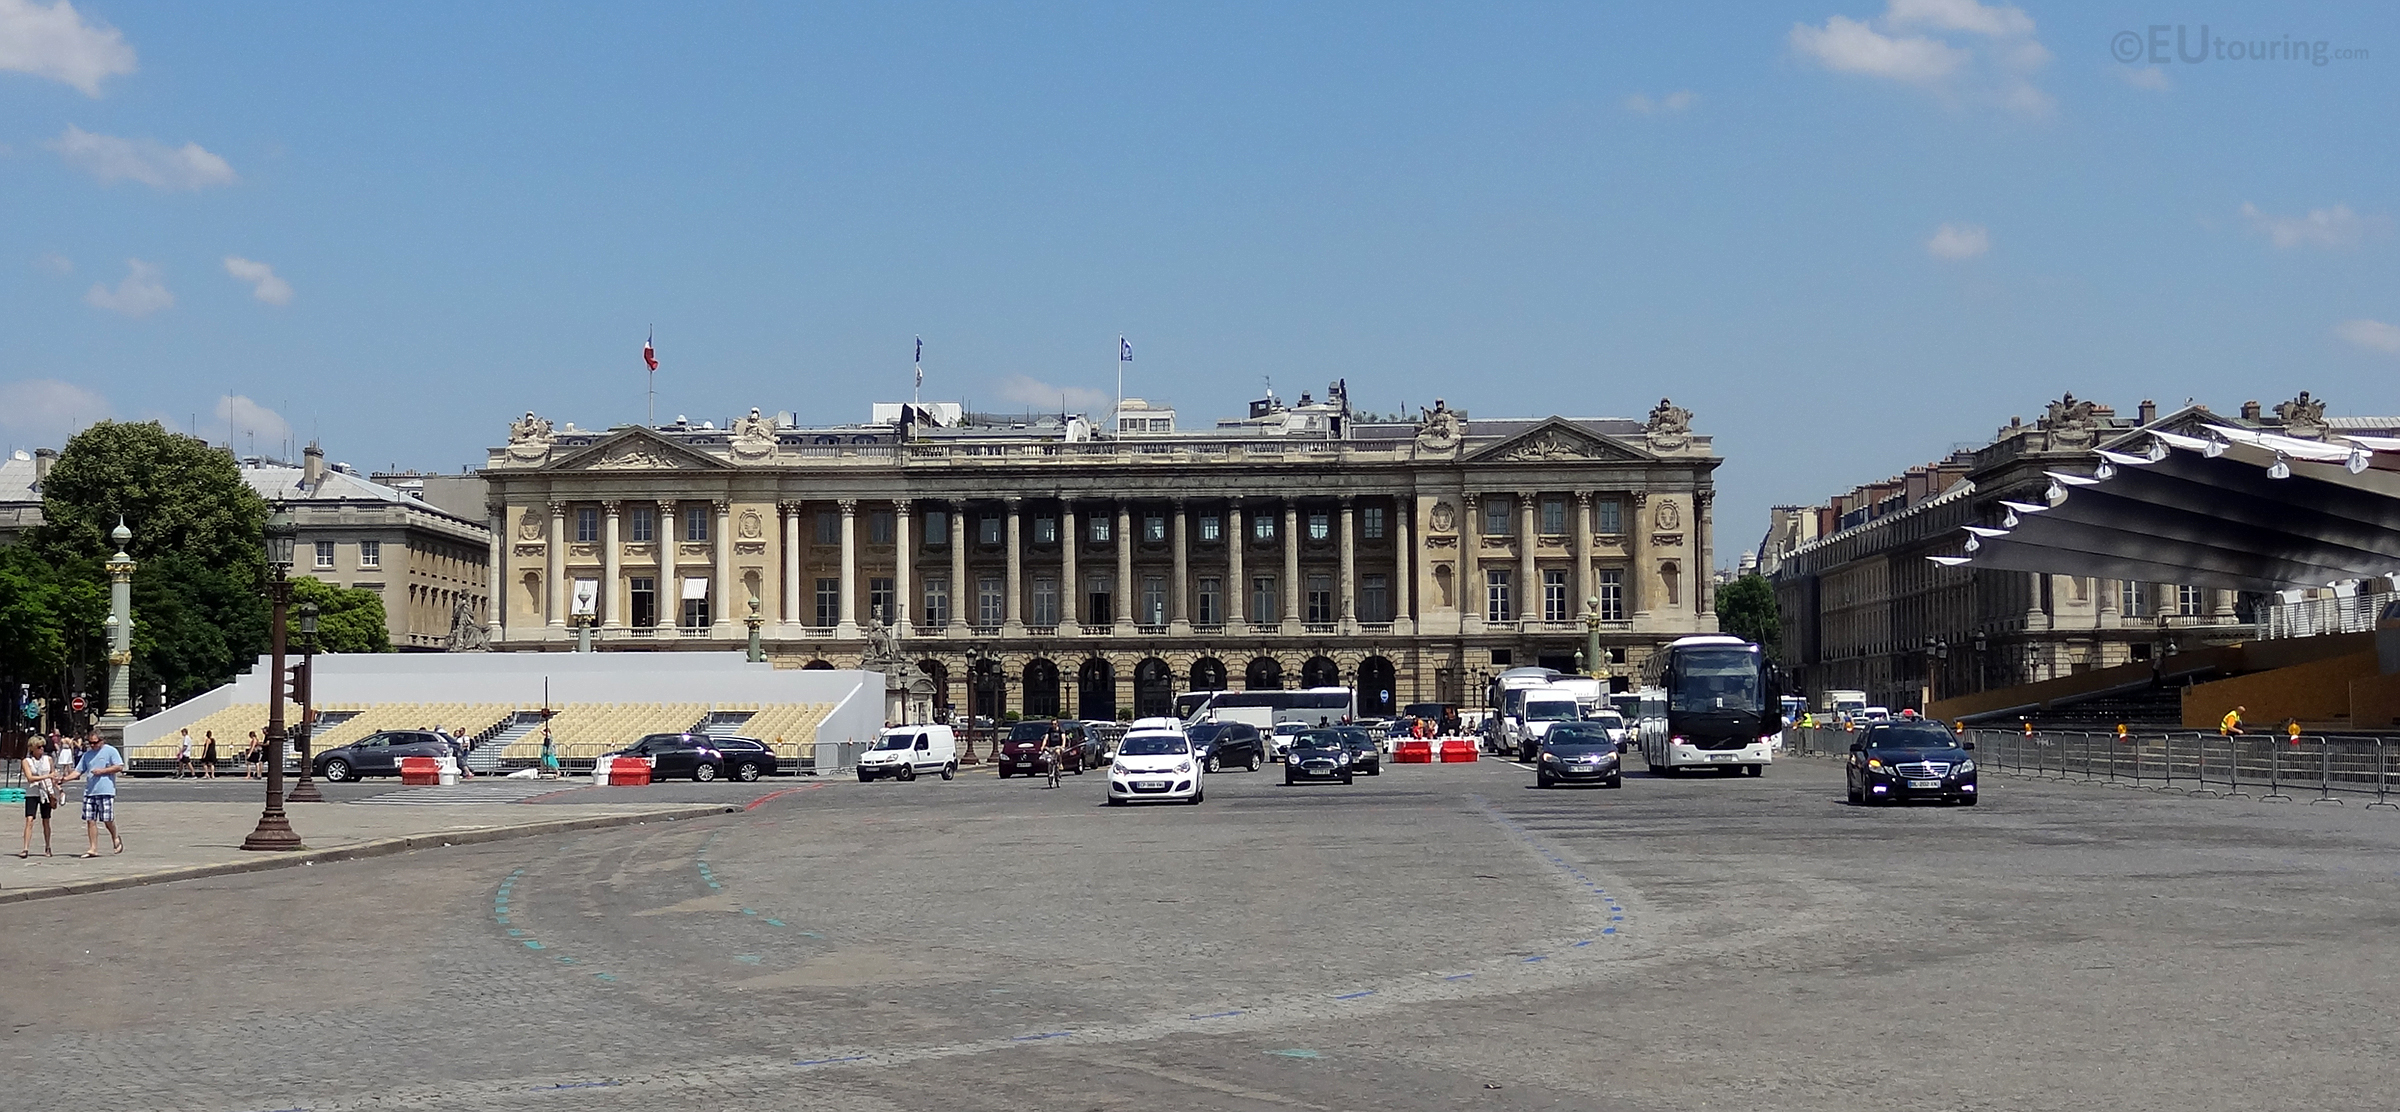 Road and buildings of the Place de la Concorde